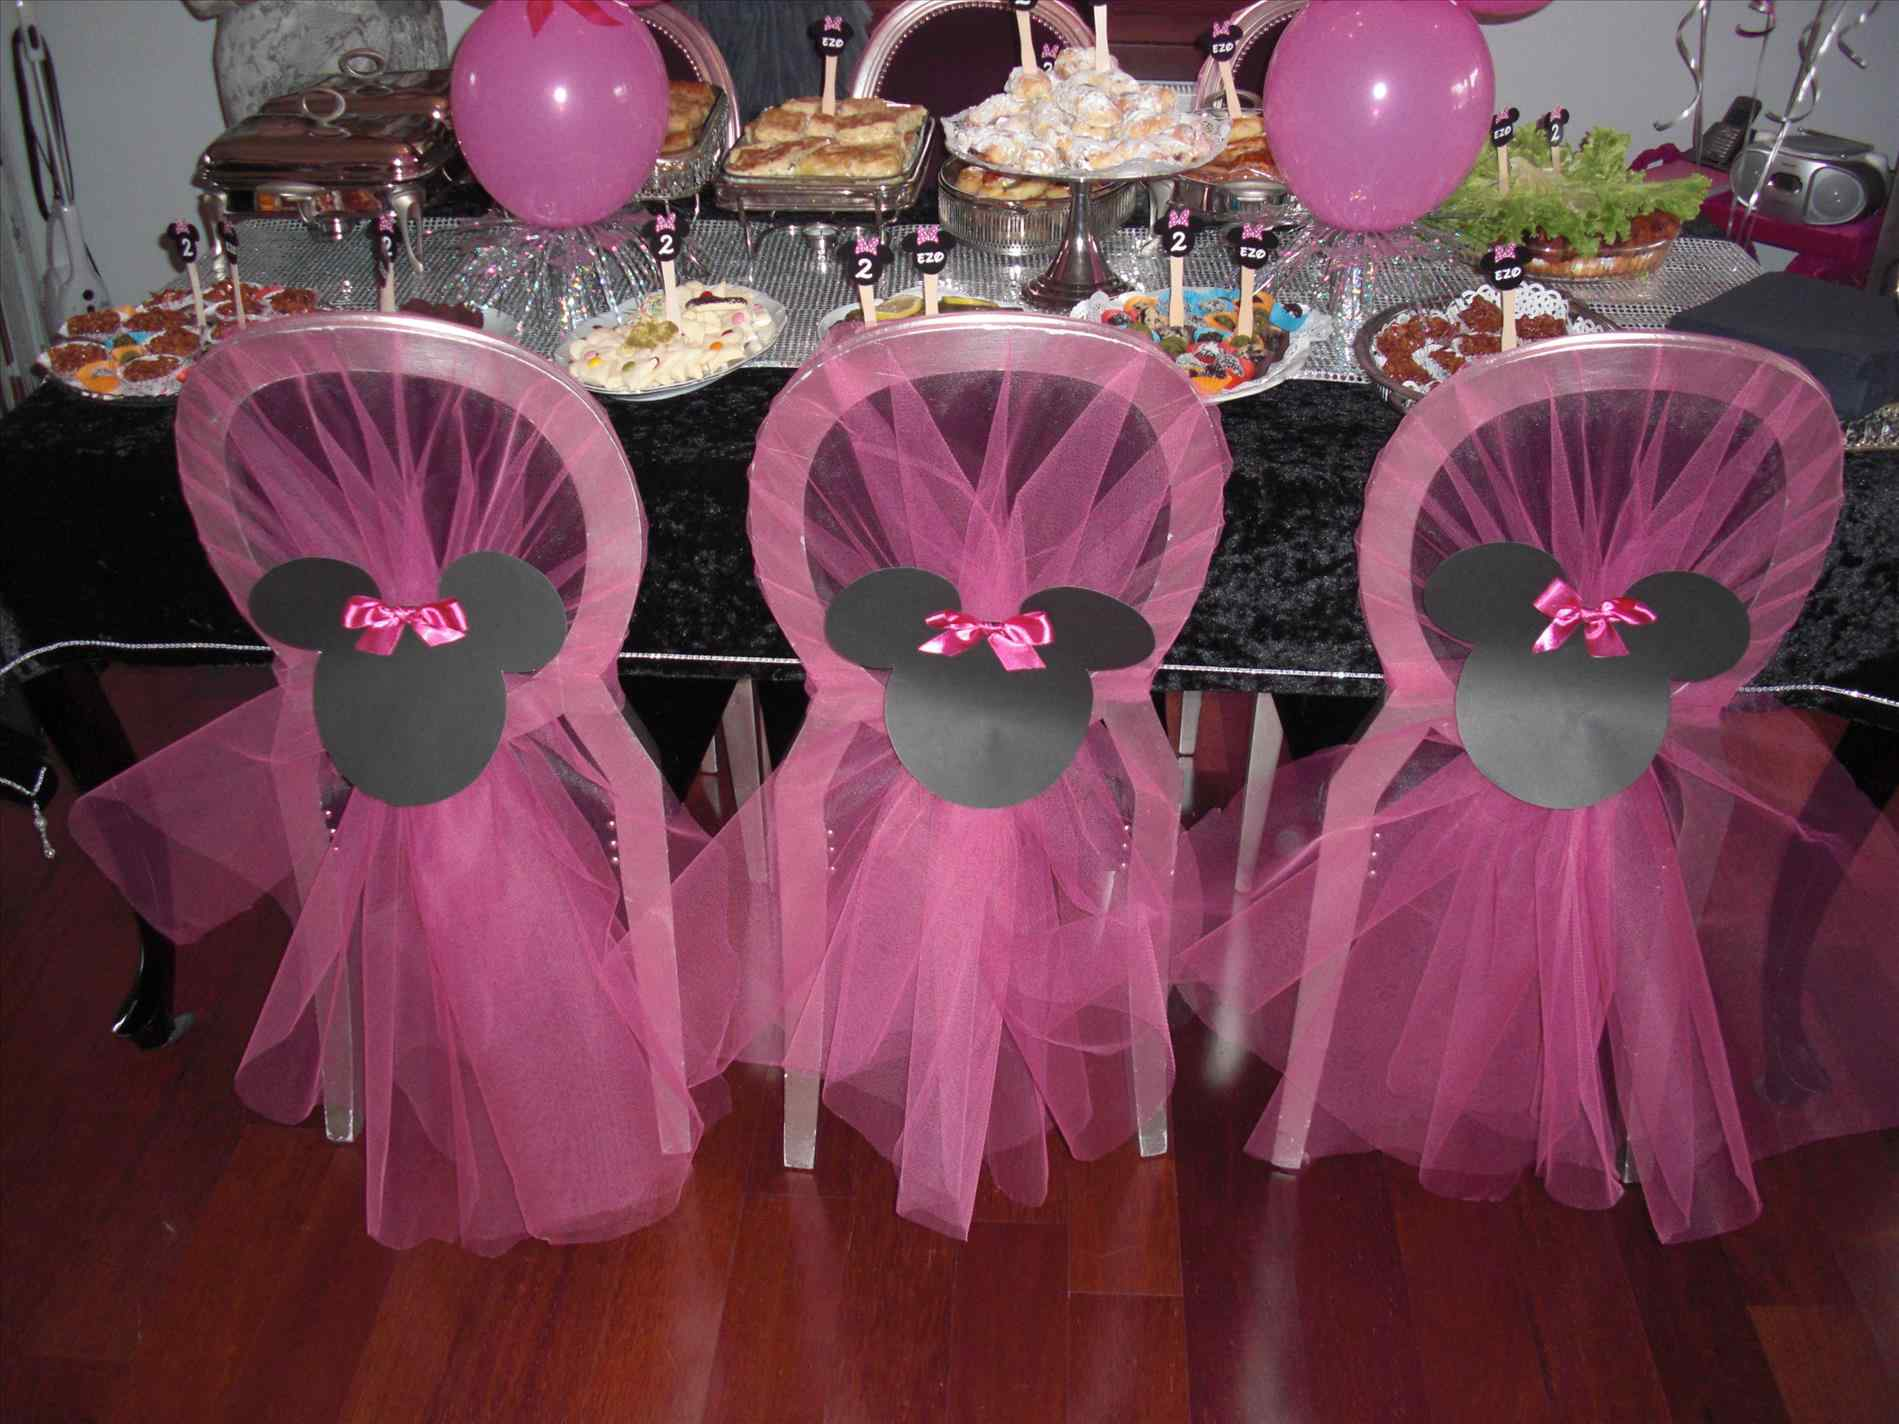 Lovely Silla Para Baby Shower | Applmeapro.club intended for New Sillas Para Baby Shower